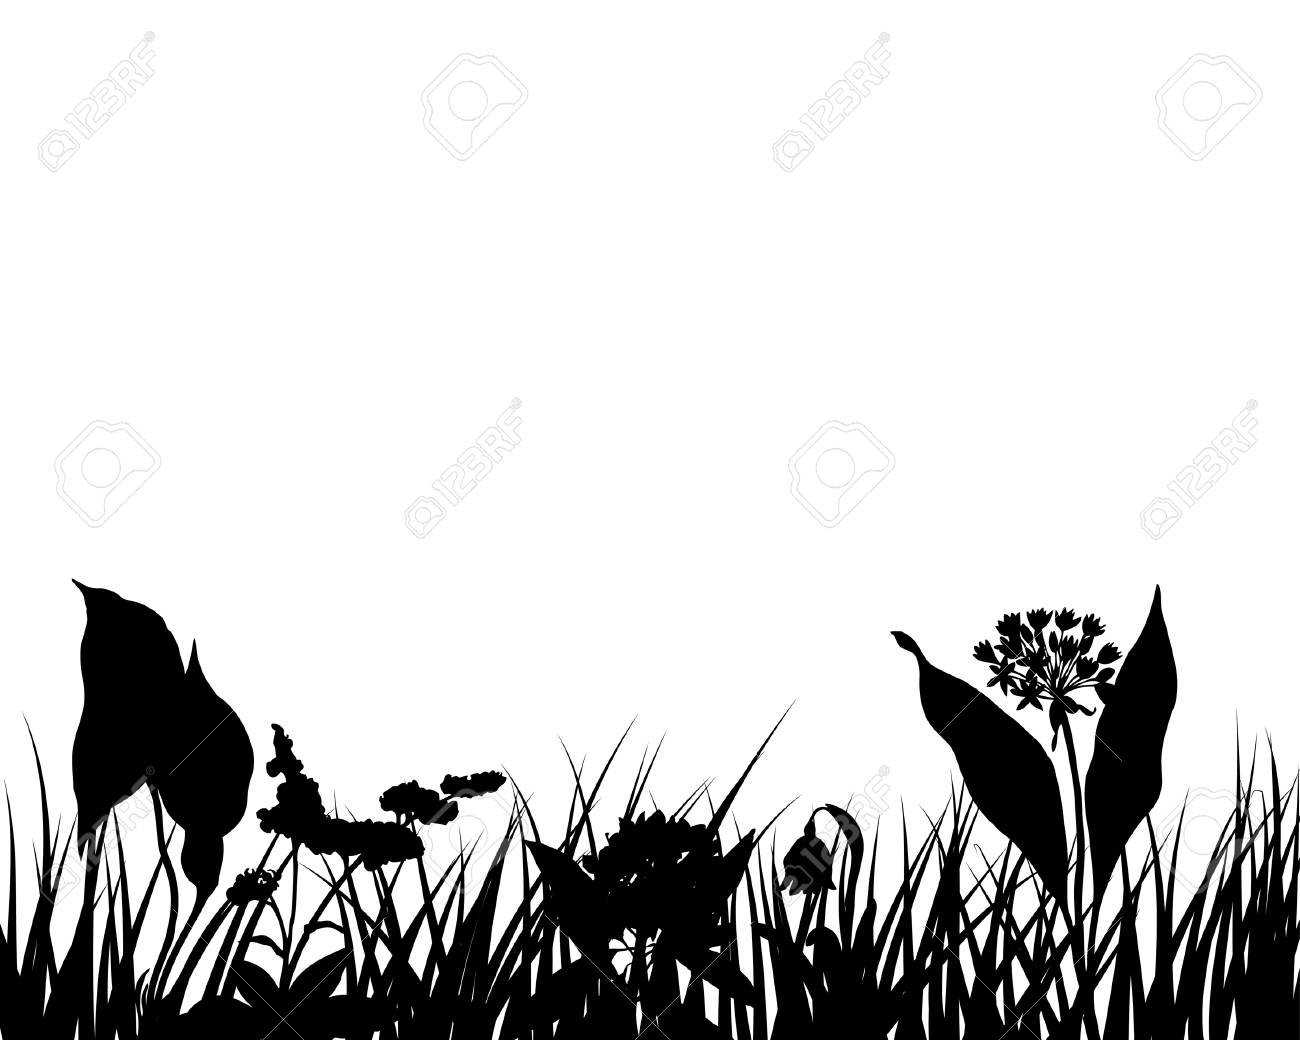 Grass silhouettes ornate on the white background Stock Vector - 3858628